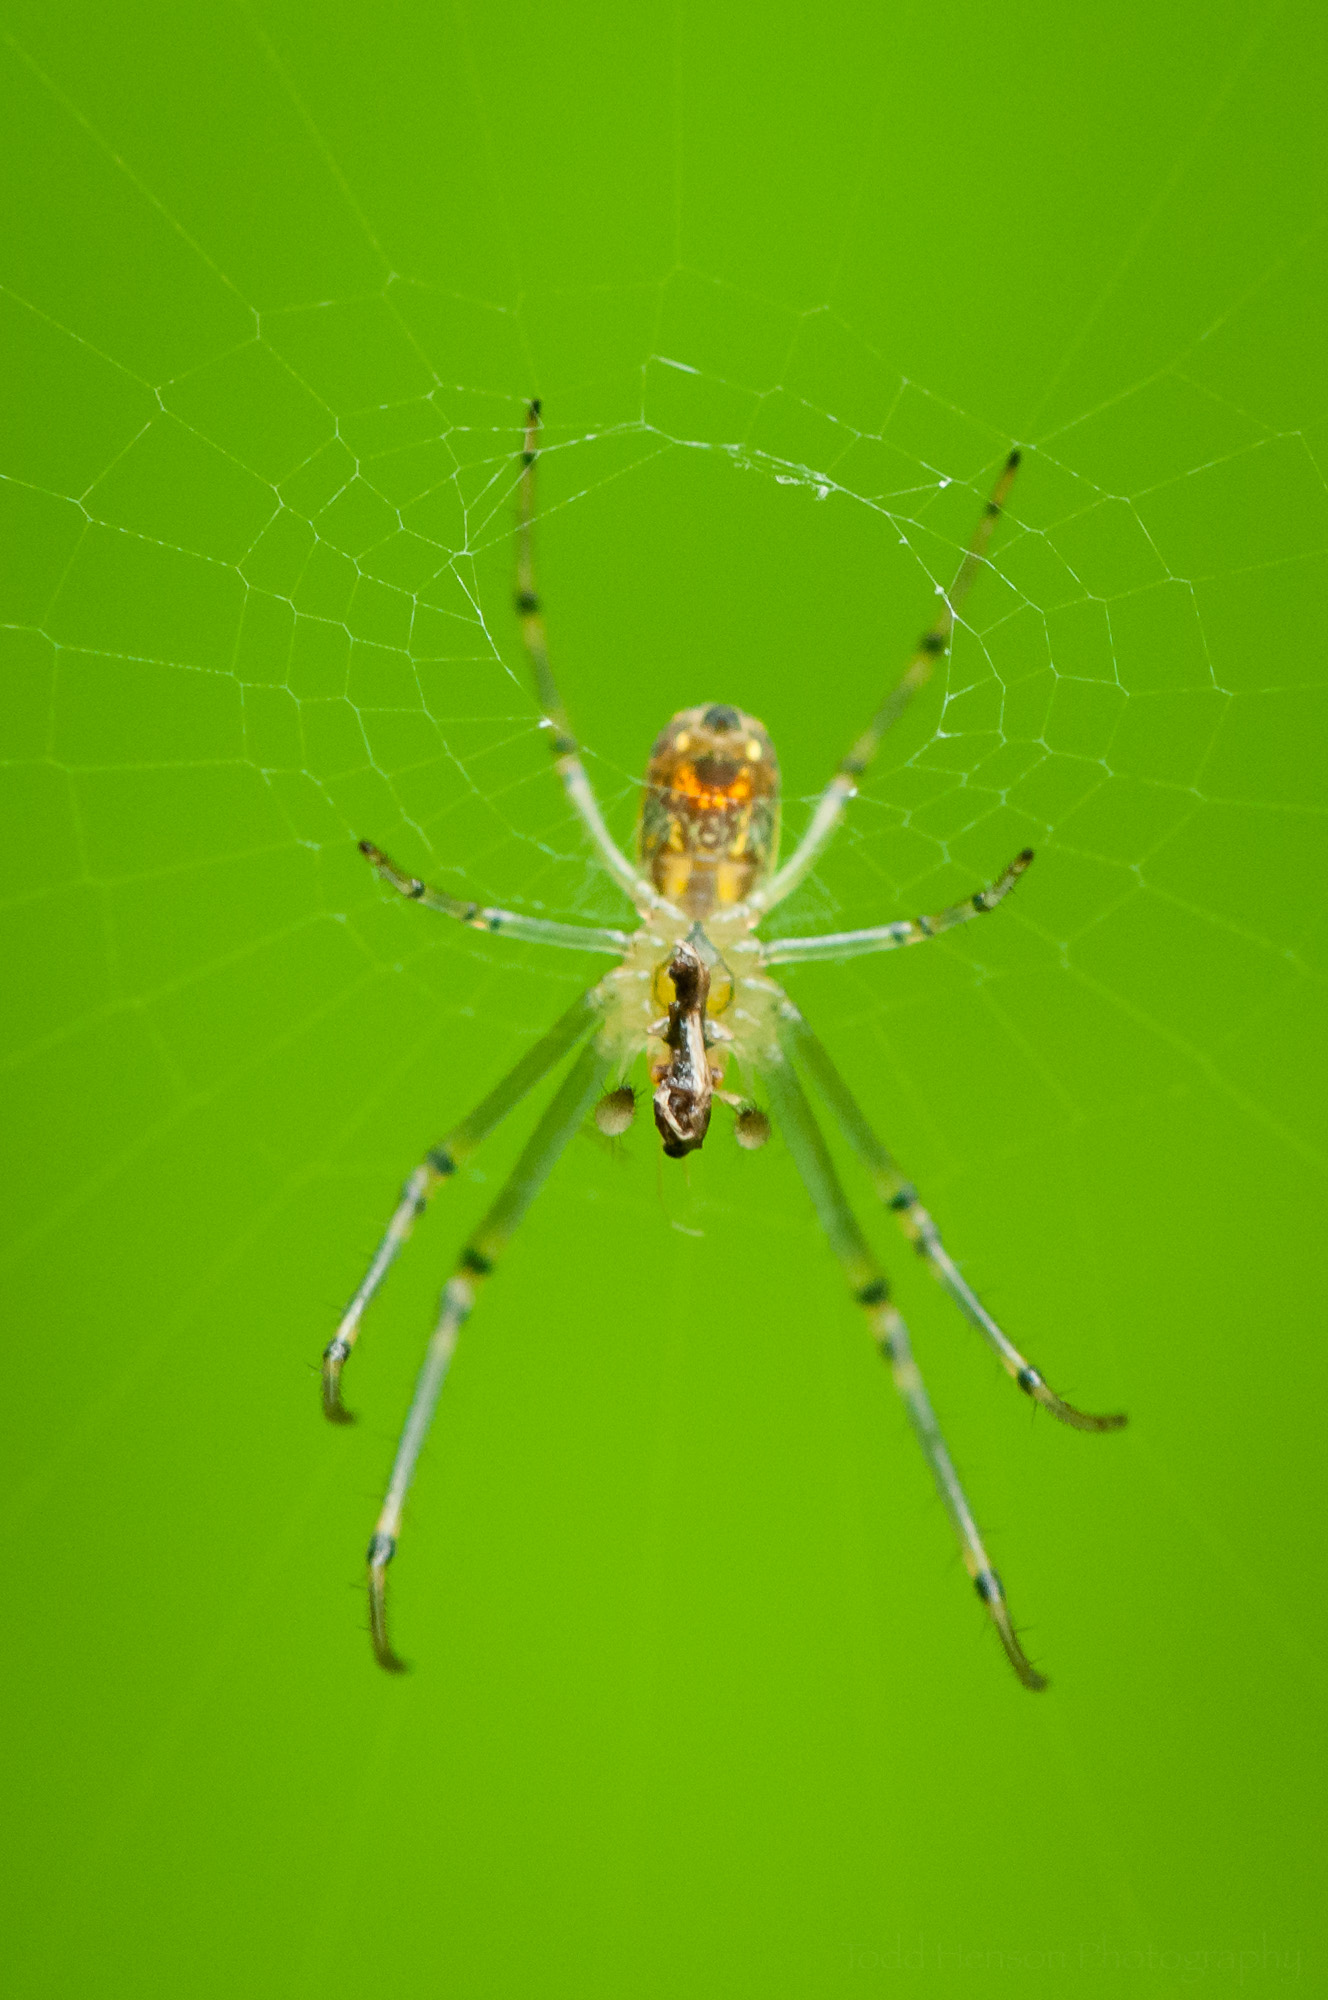 Final image of the Orchard Spider with prey.